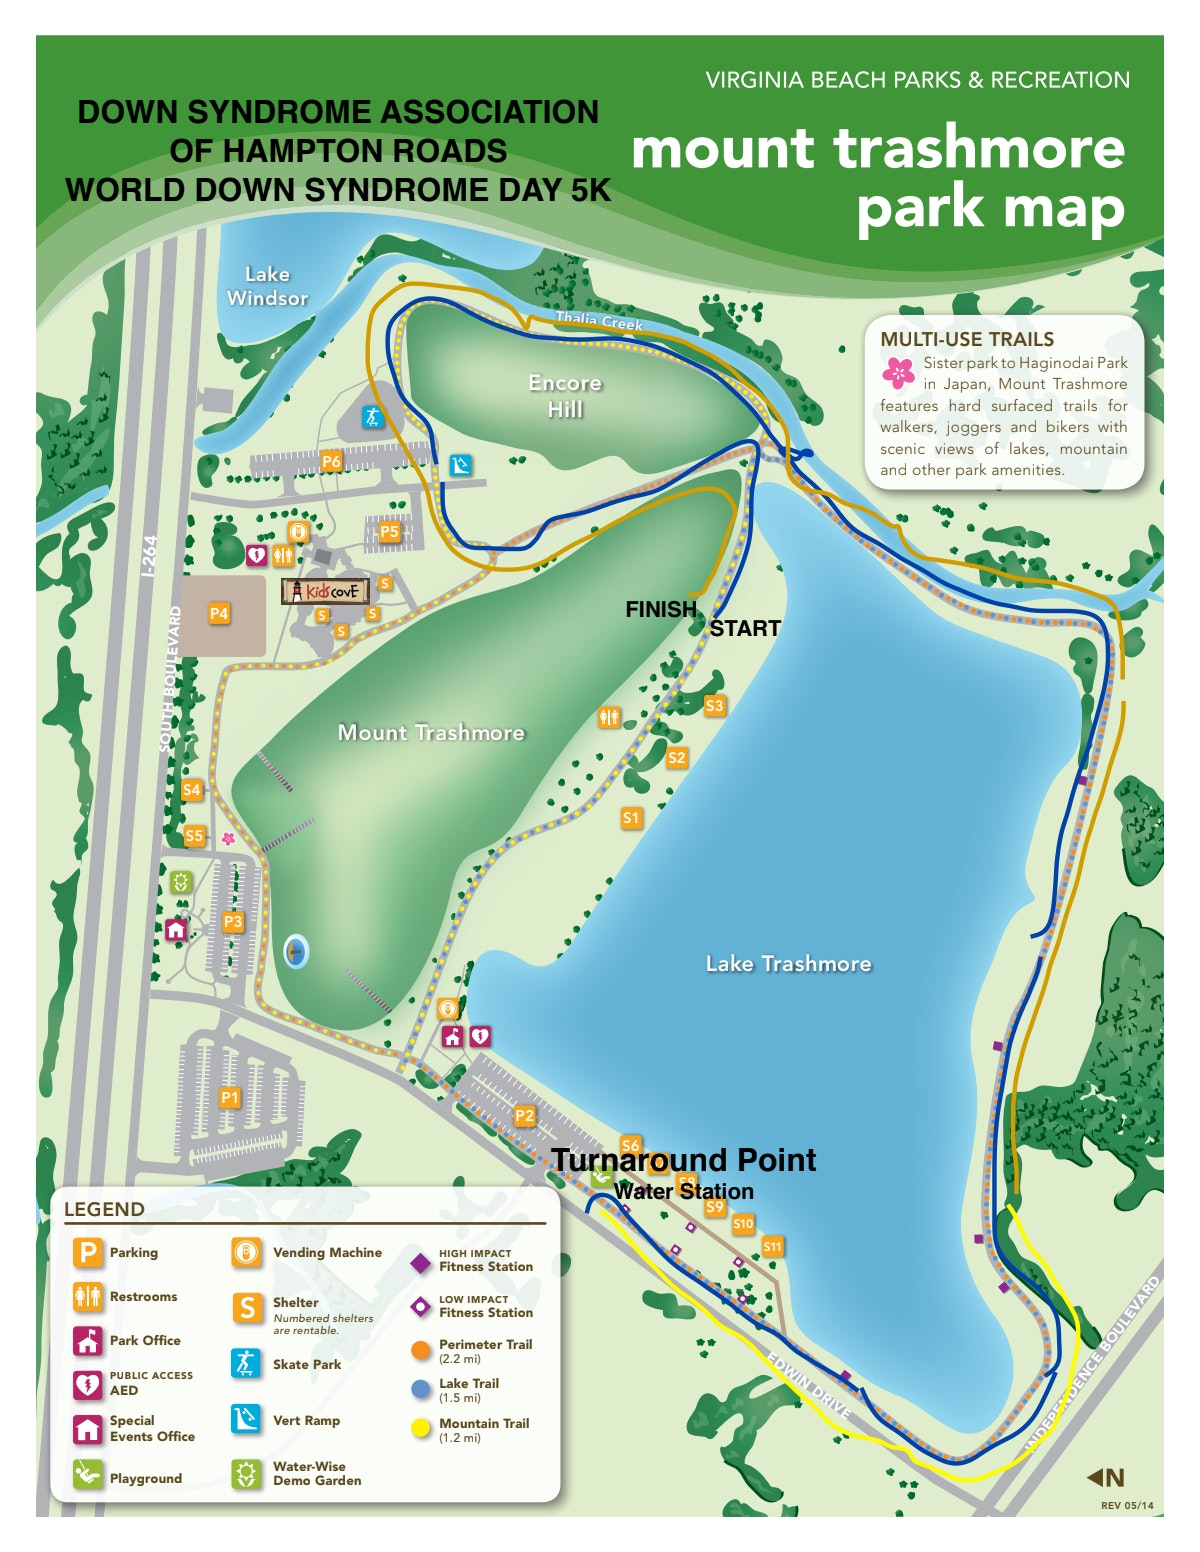 Course map for WDSD 5K - Mount Trashmore Park